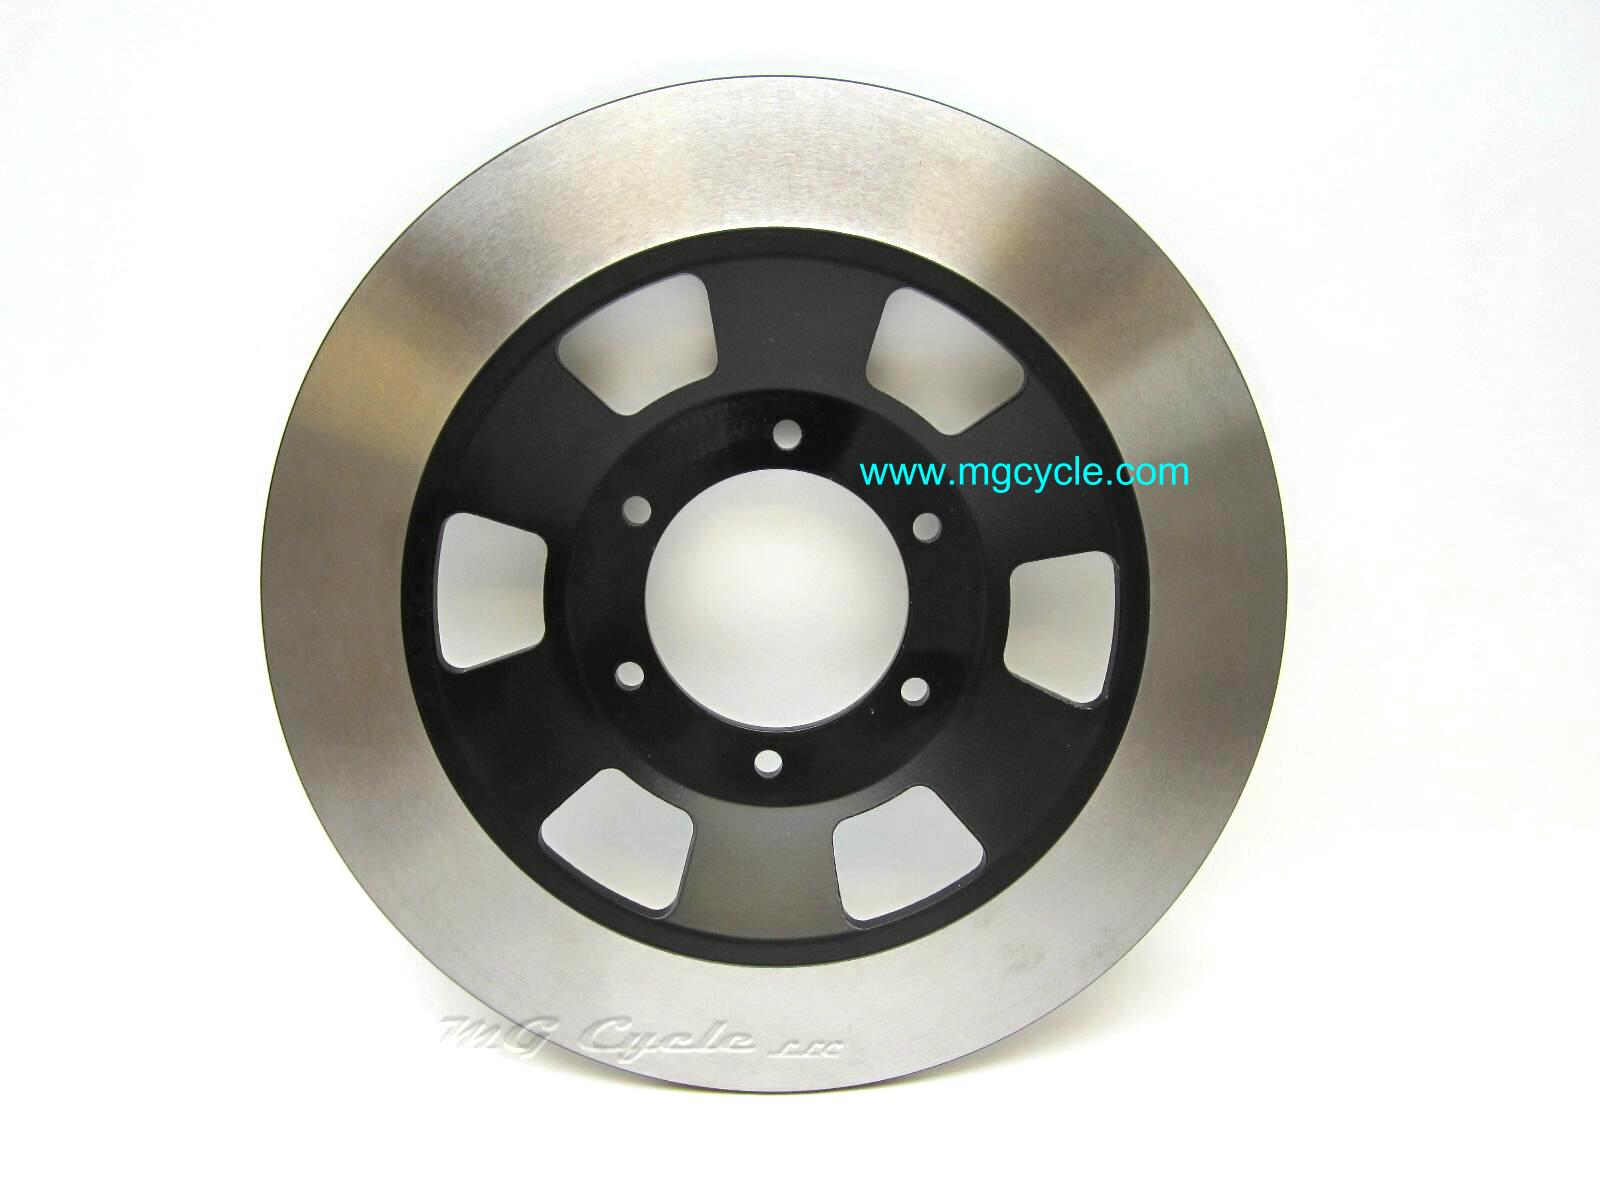 300mm iron brake disk Eldo 750S S3 T T3 T4 G5 SP Cal2 Convert